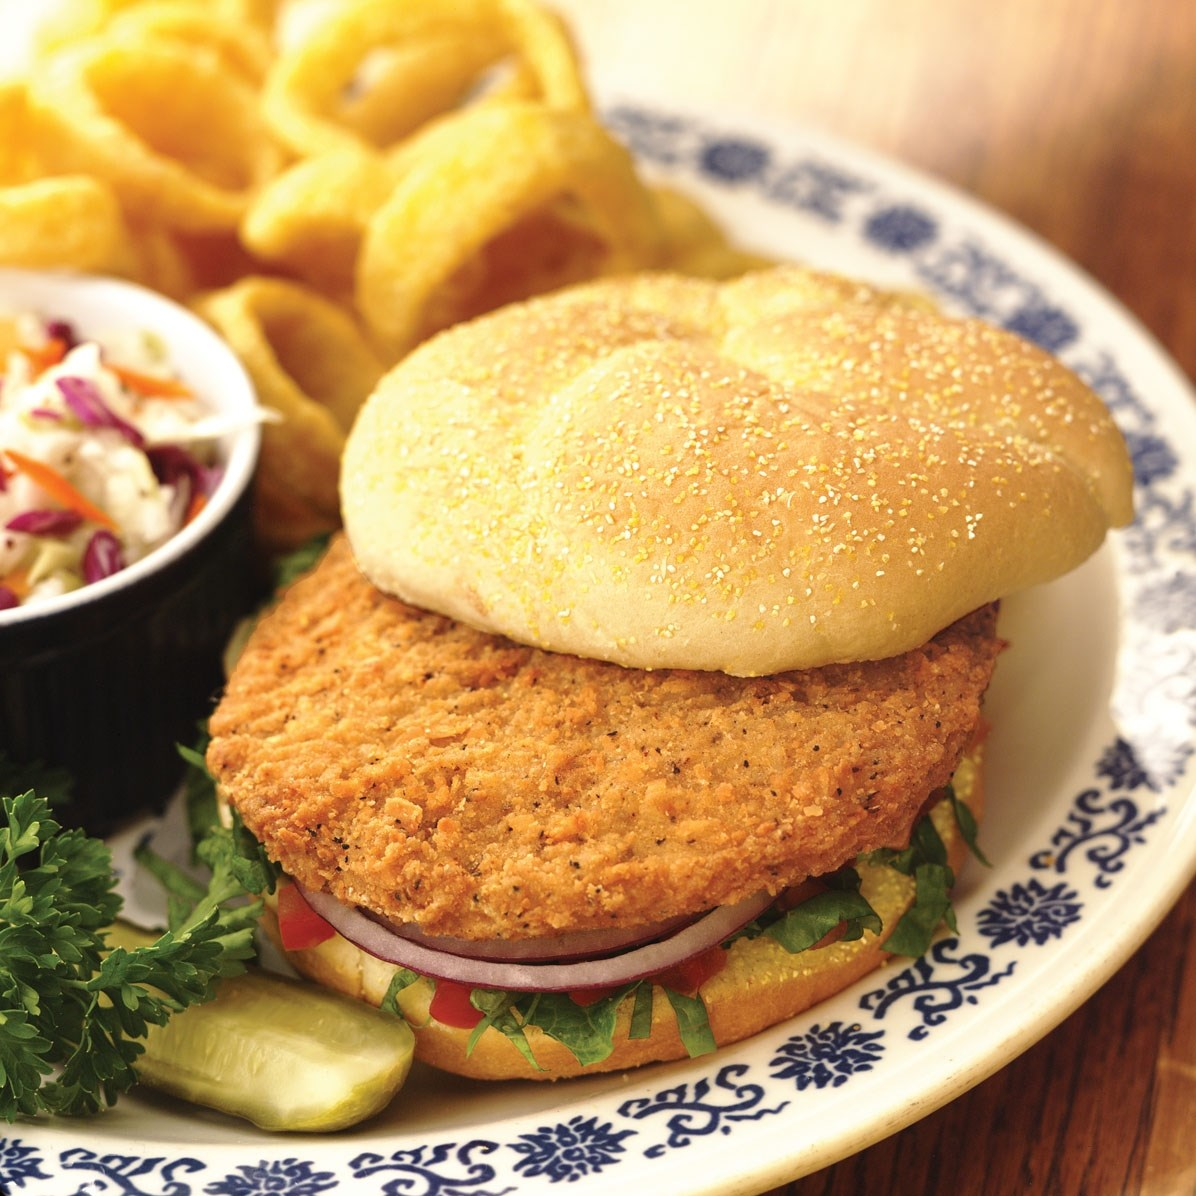 KINGS DELIGHT® NO ANTIBIOTICS EVER, Fully Cooked, Spicy, Whole Grain Chicken Breast Patties Fritter, CN…<br/>(66222)